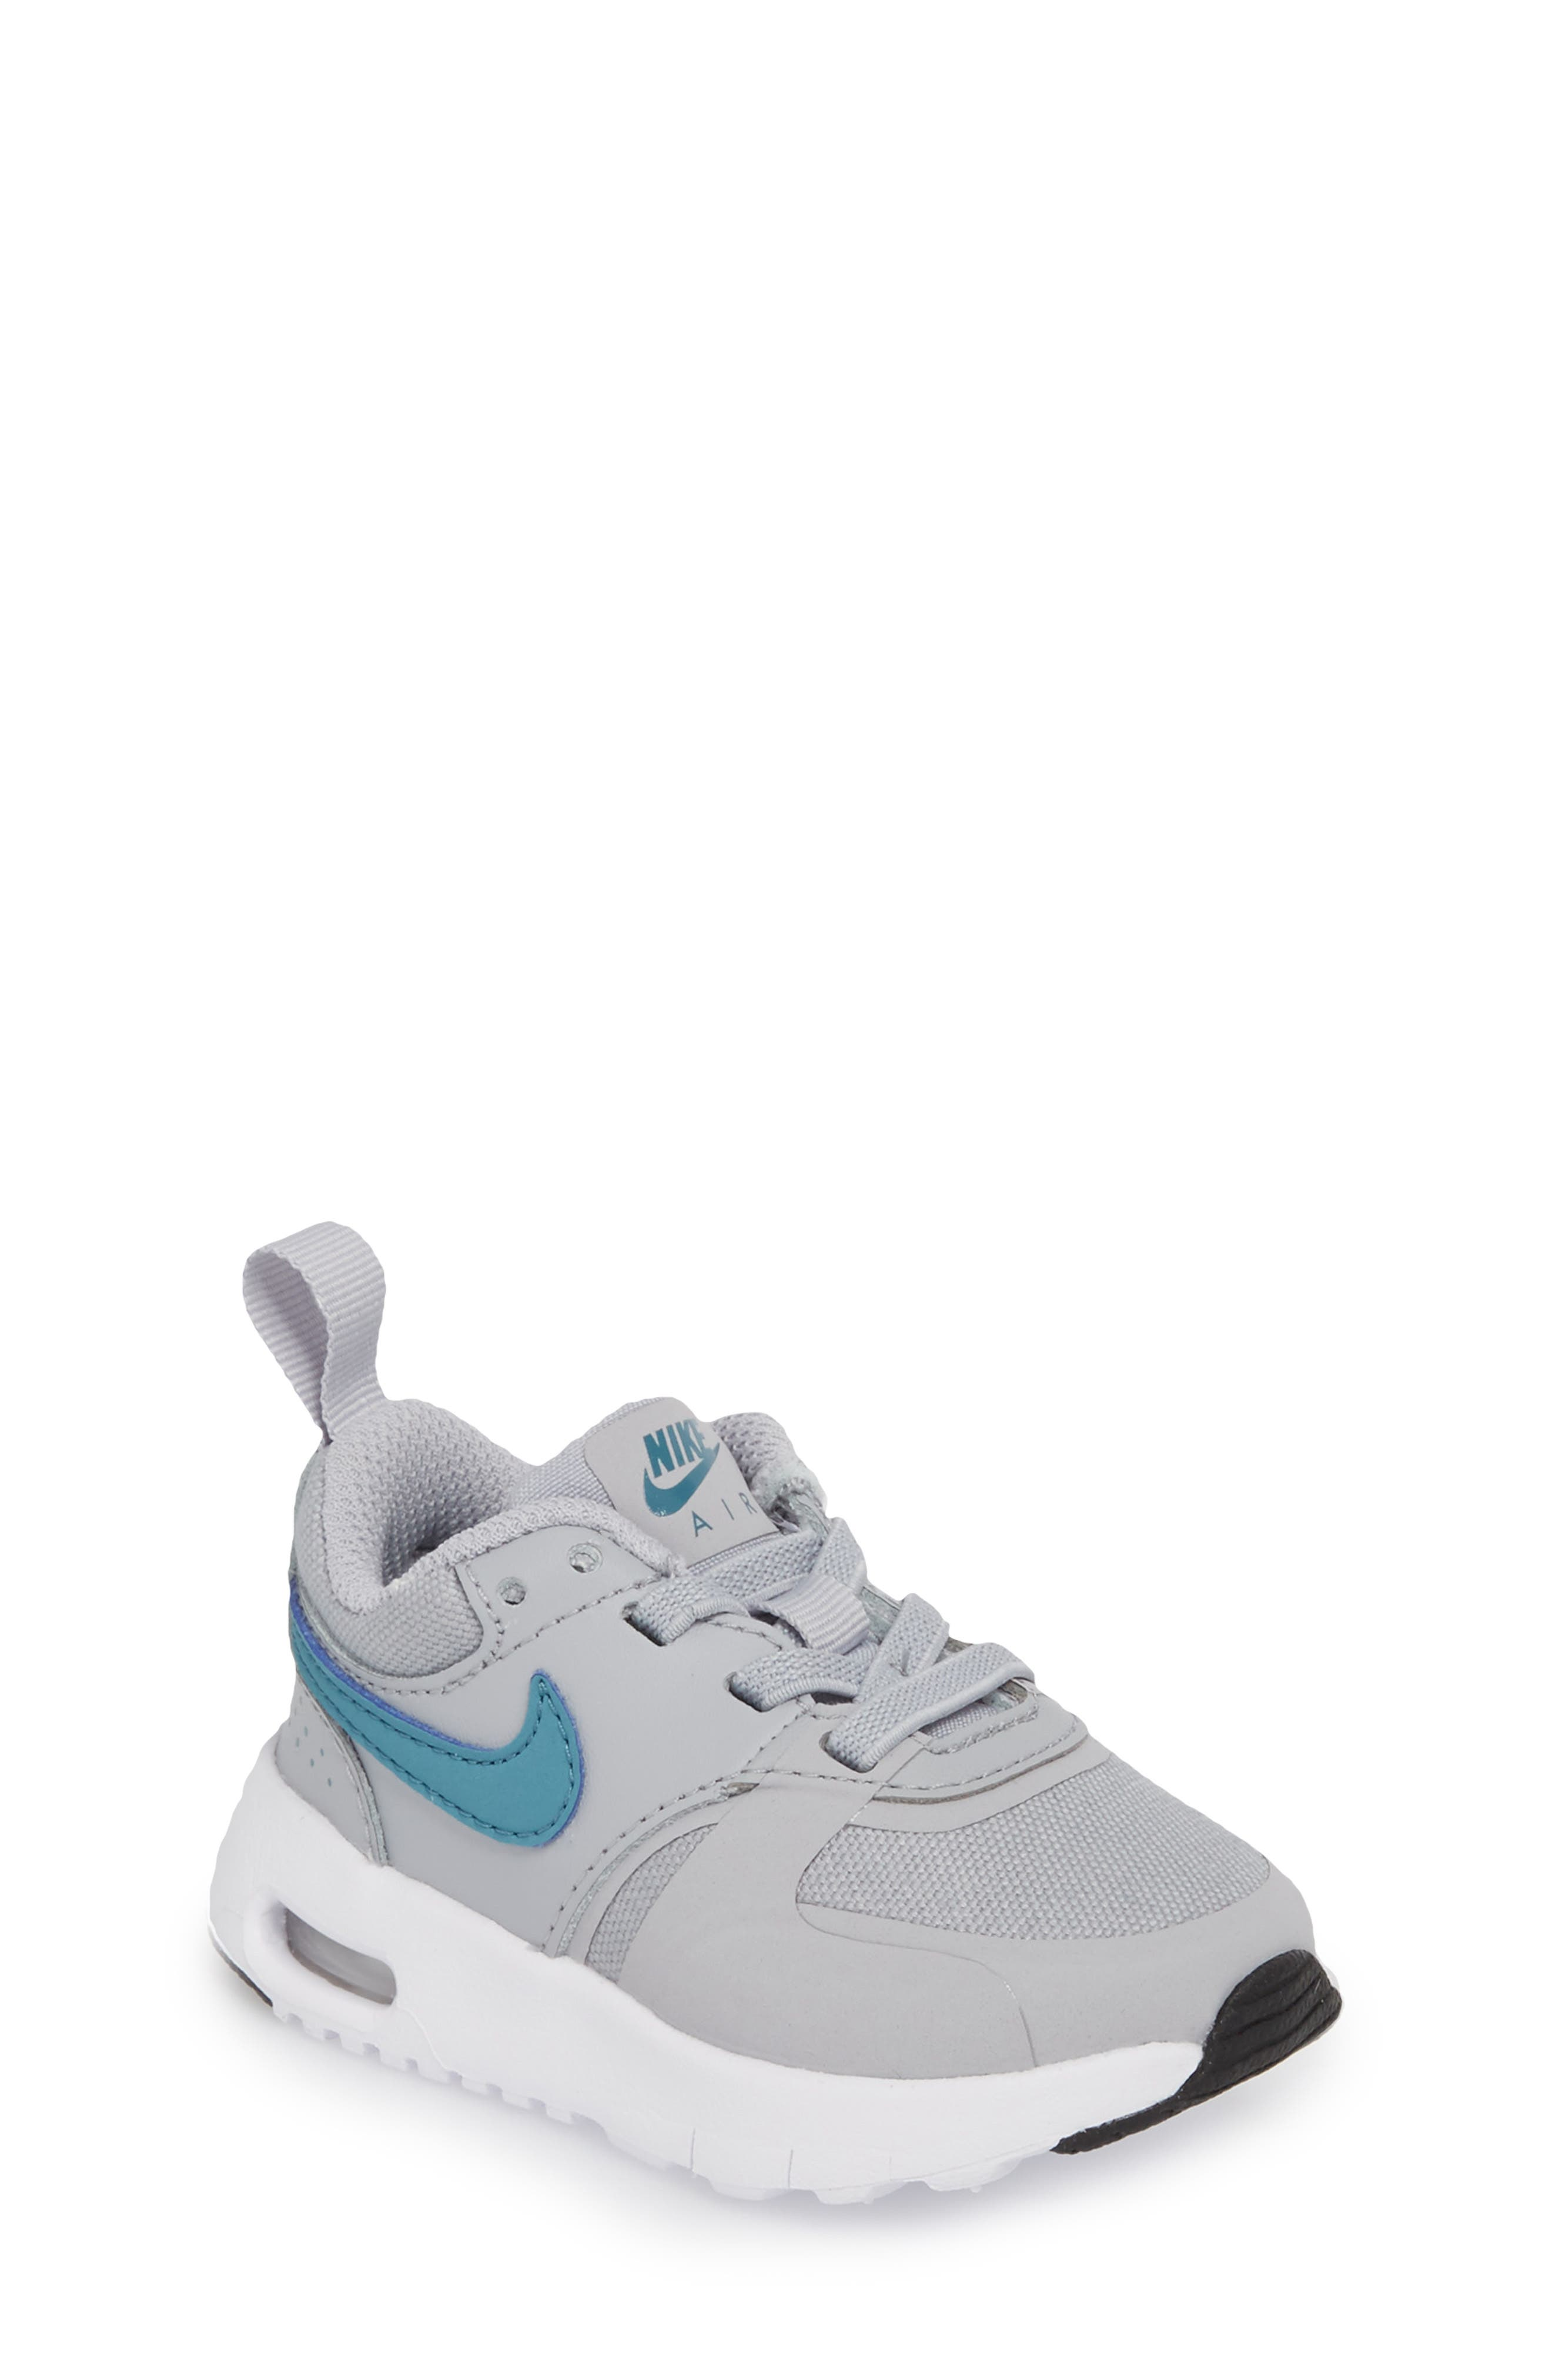 Nike Air Max Vision Sneaker (Baby, Walker, Toddler, Little Kid & Big Kid)